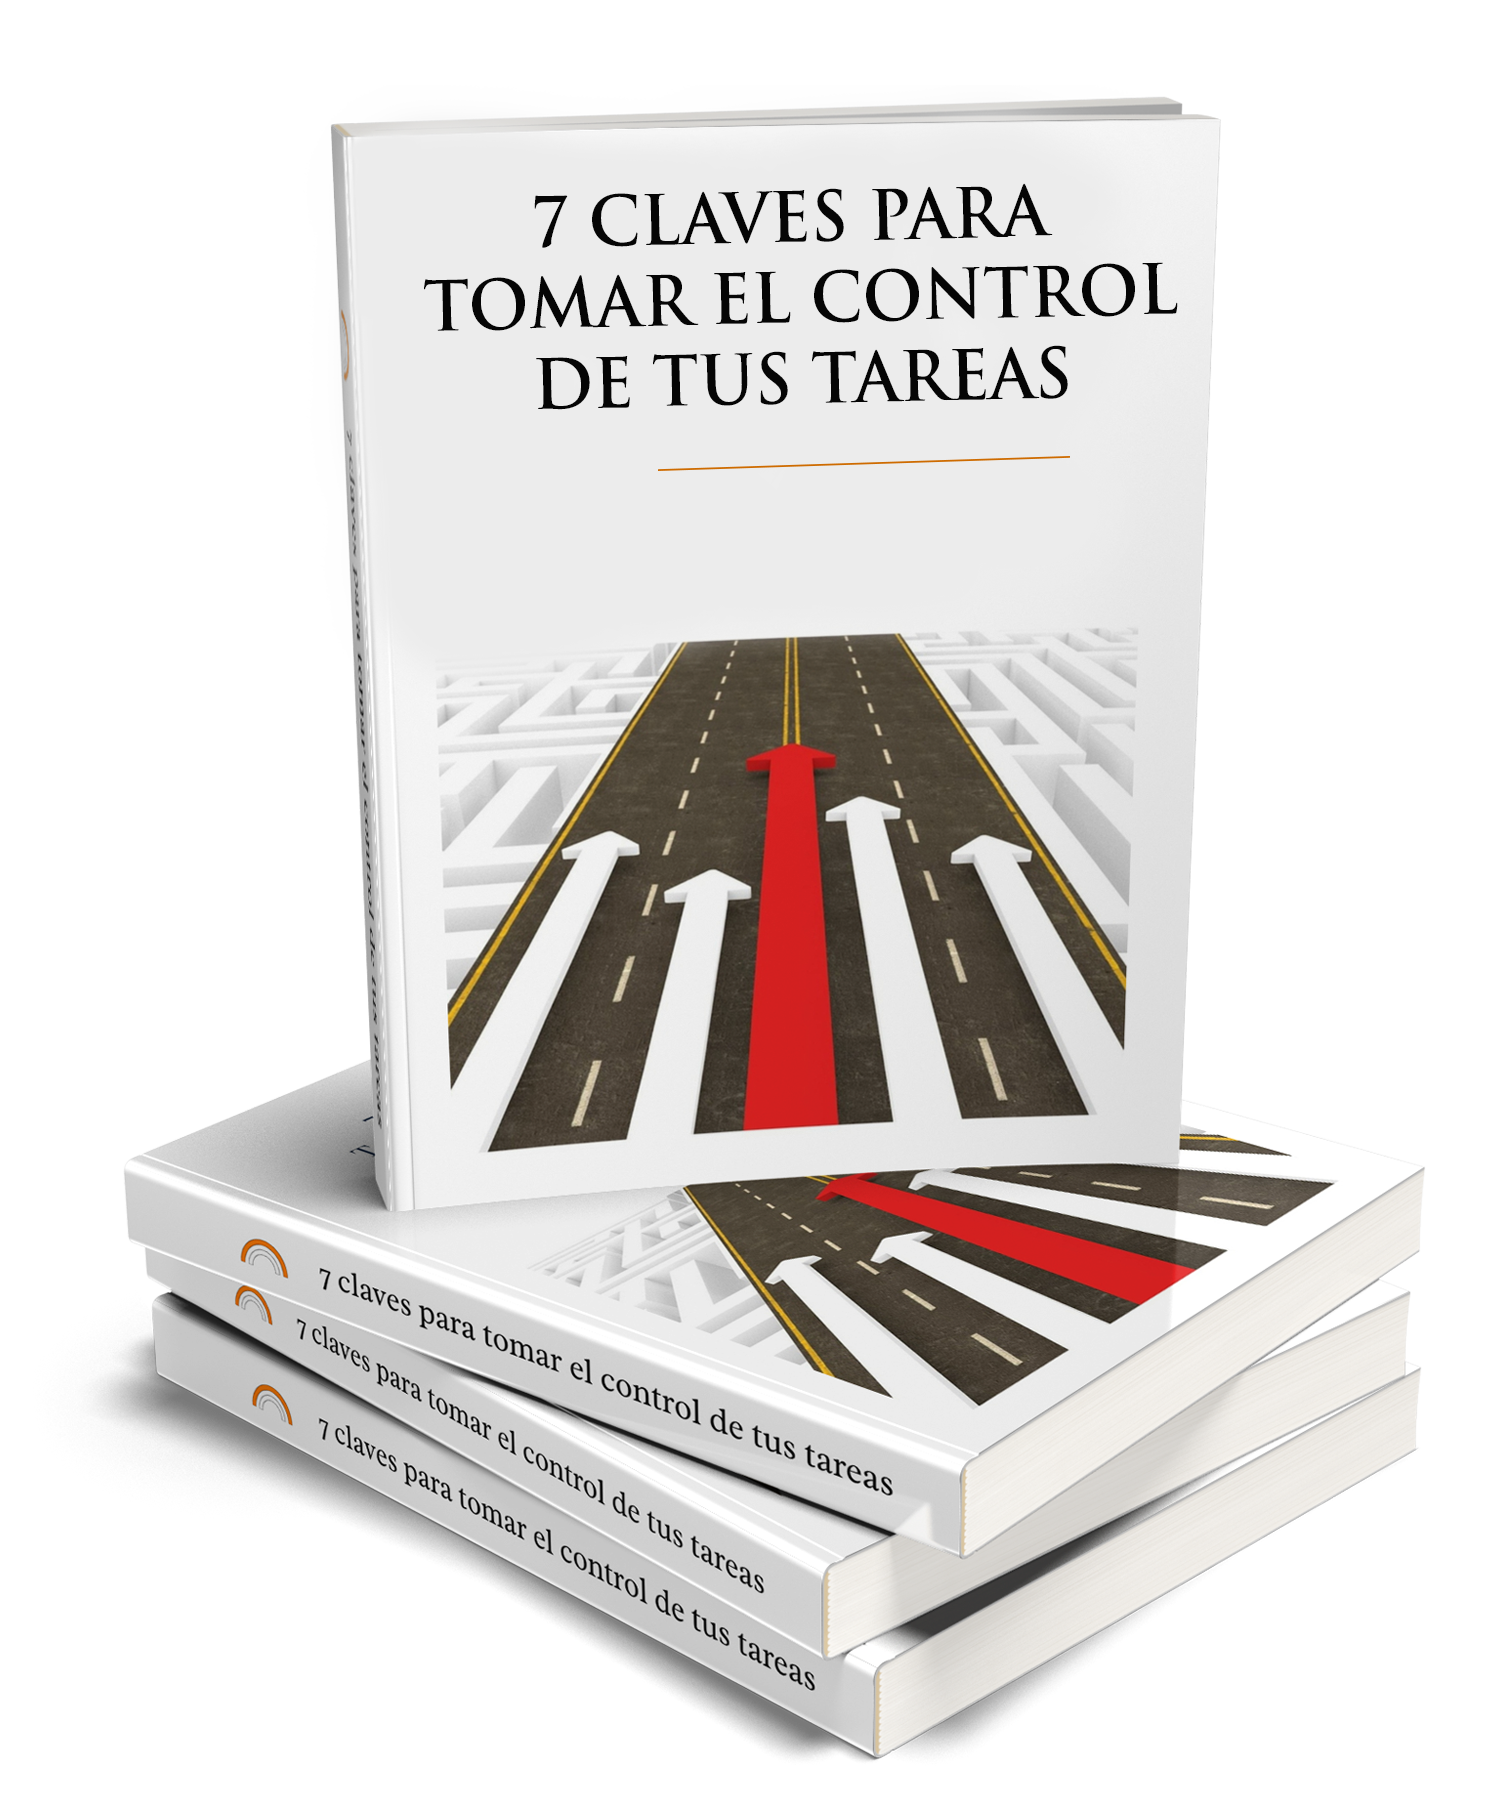 Ebook 7 claves